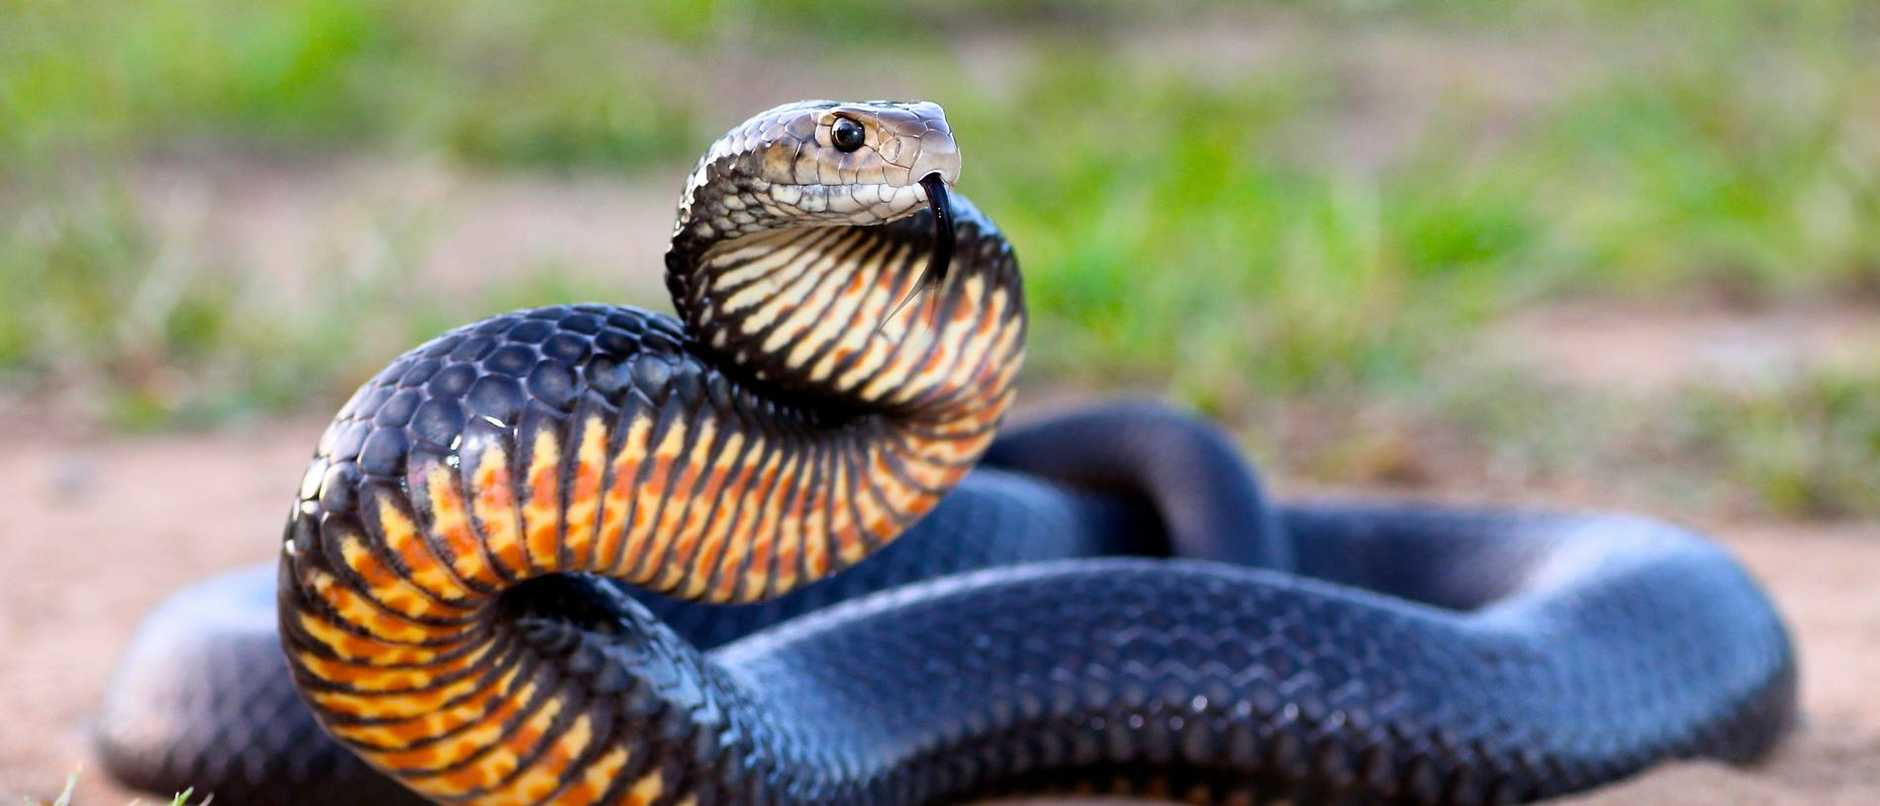 Two women have been hospitalised after suffering snake bites to their feet and legs.